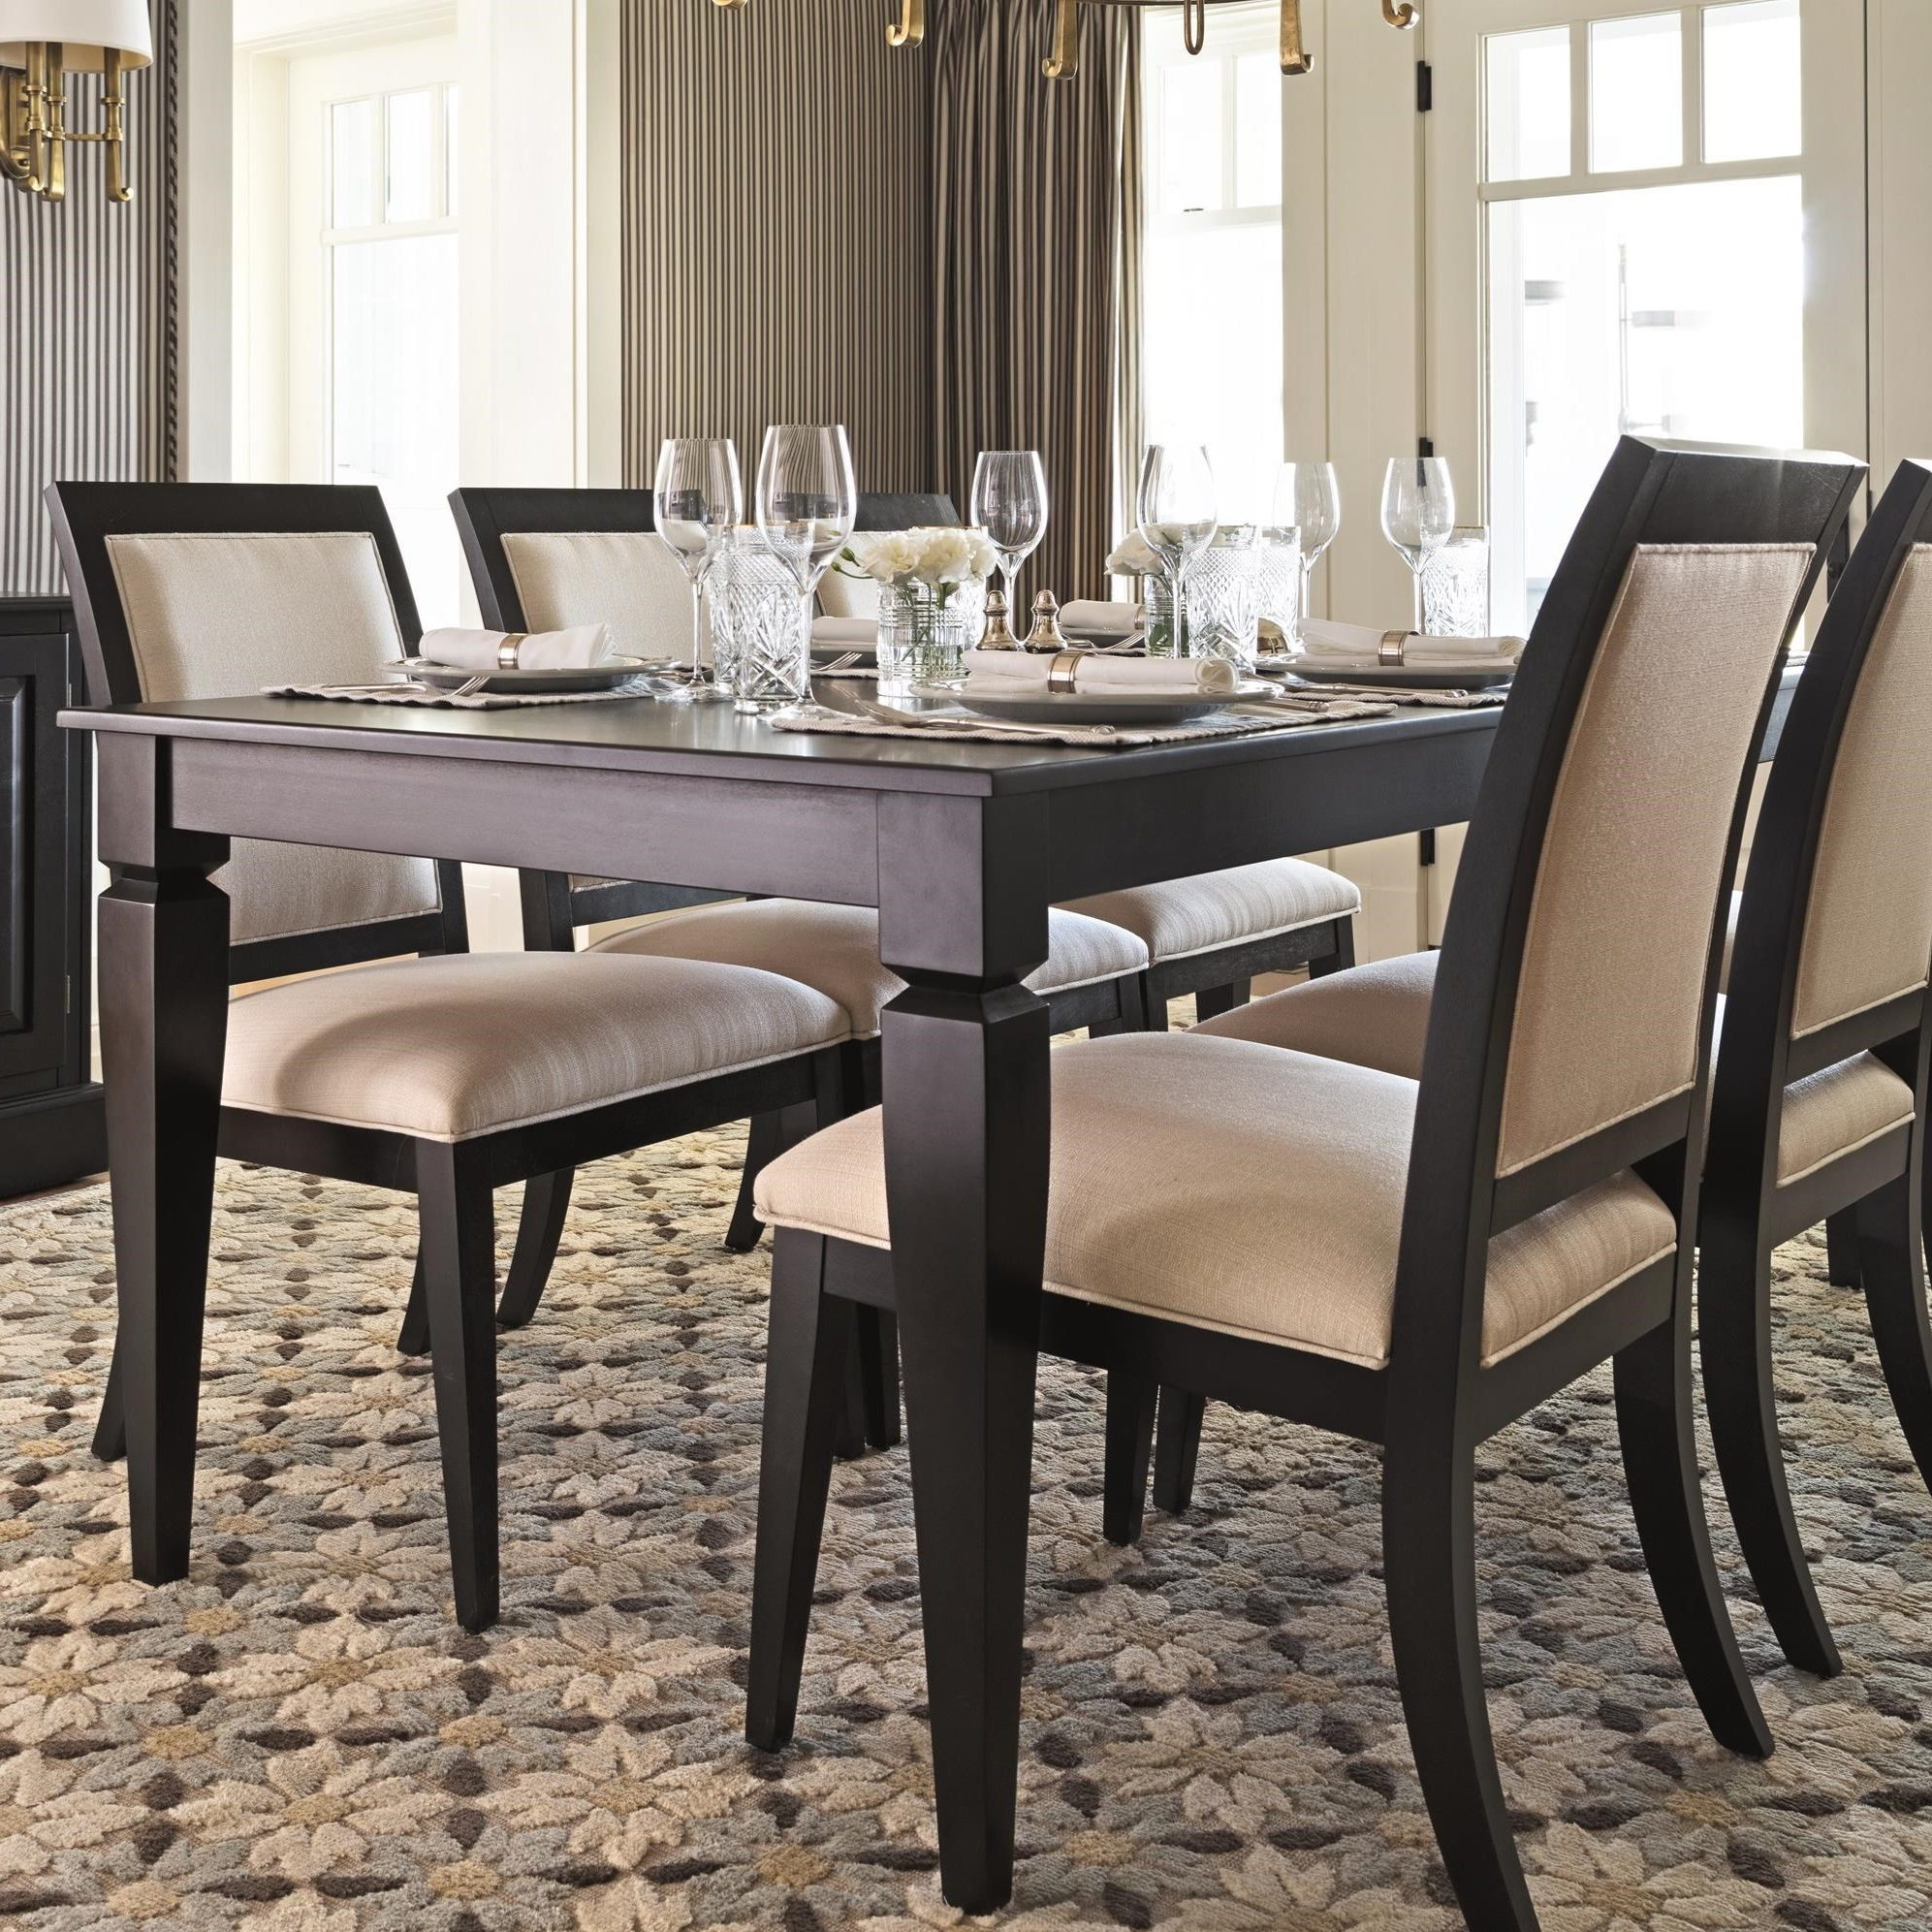 Canadel Custom Dining Customizable Rectangular Dining Table In Trendy Transitional 4 Seating Double Drop Leaf Casual Dining Tables (View 14 of 25)